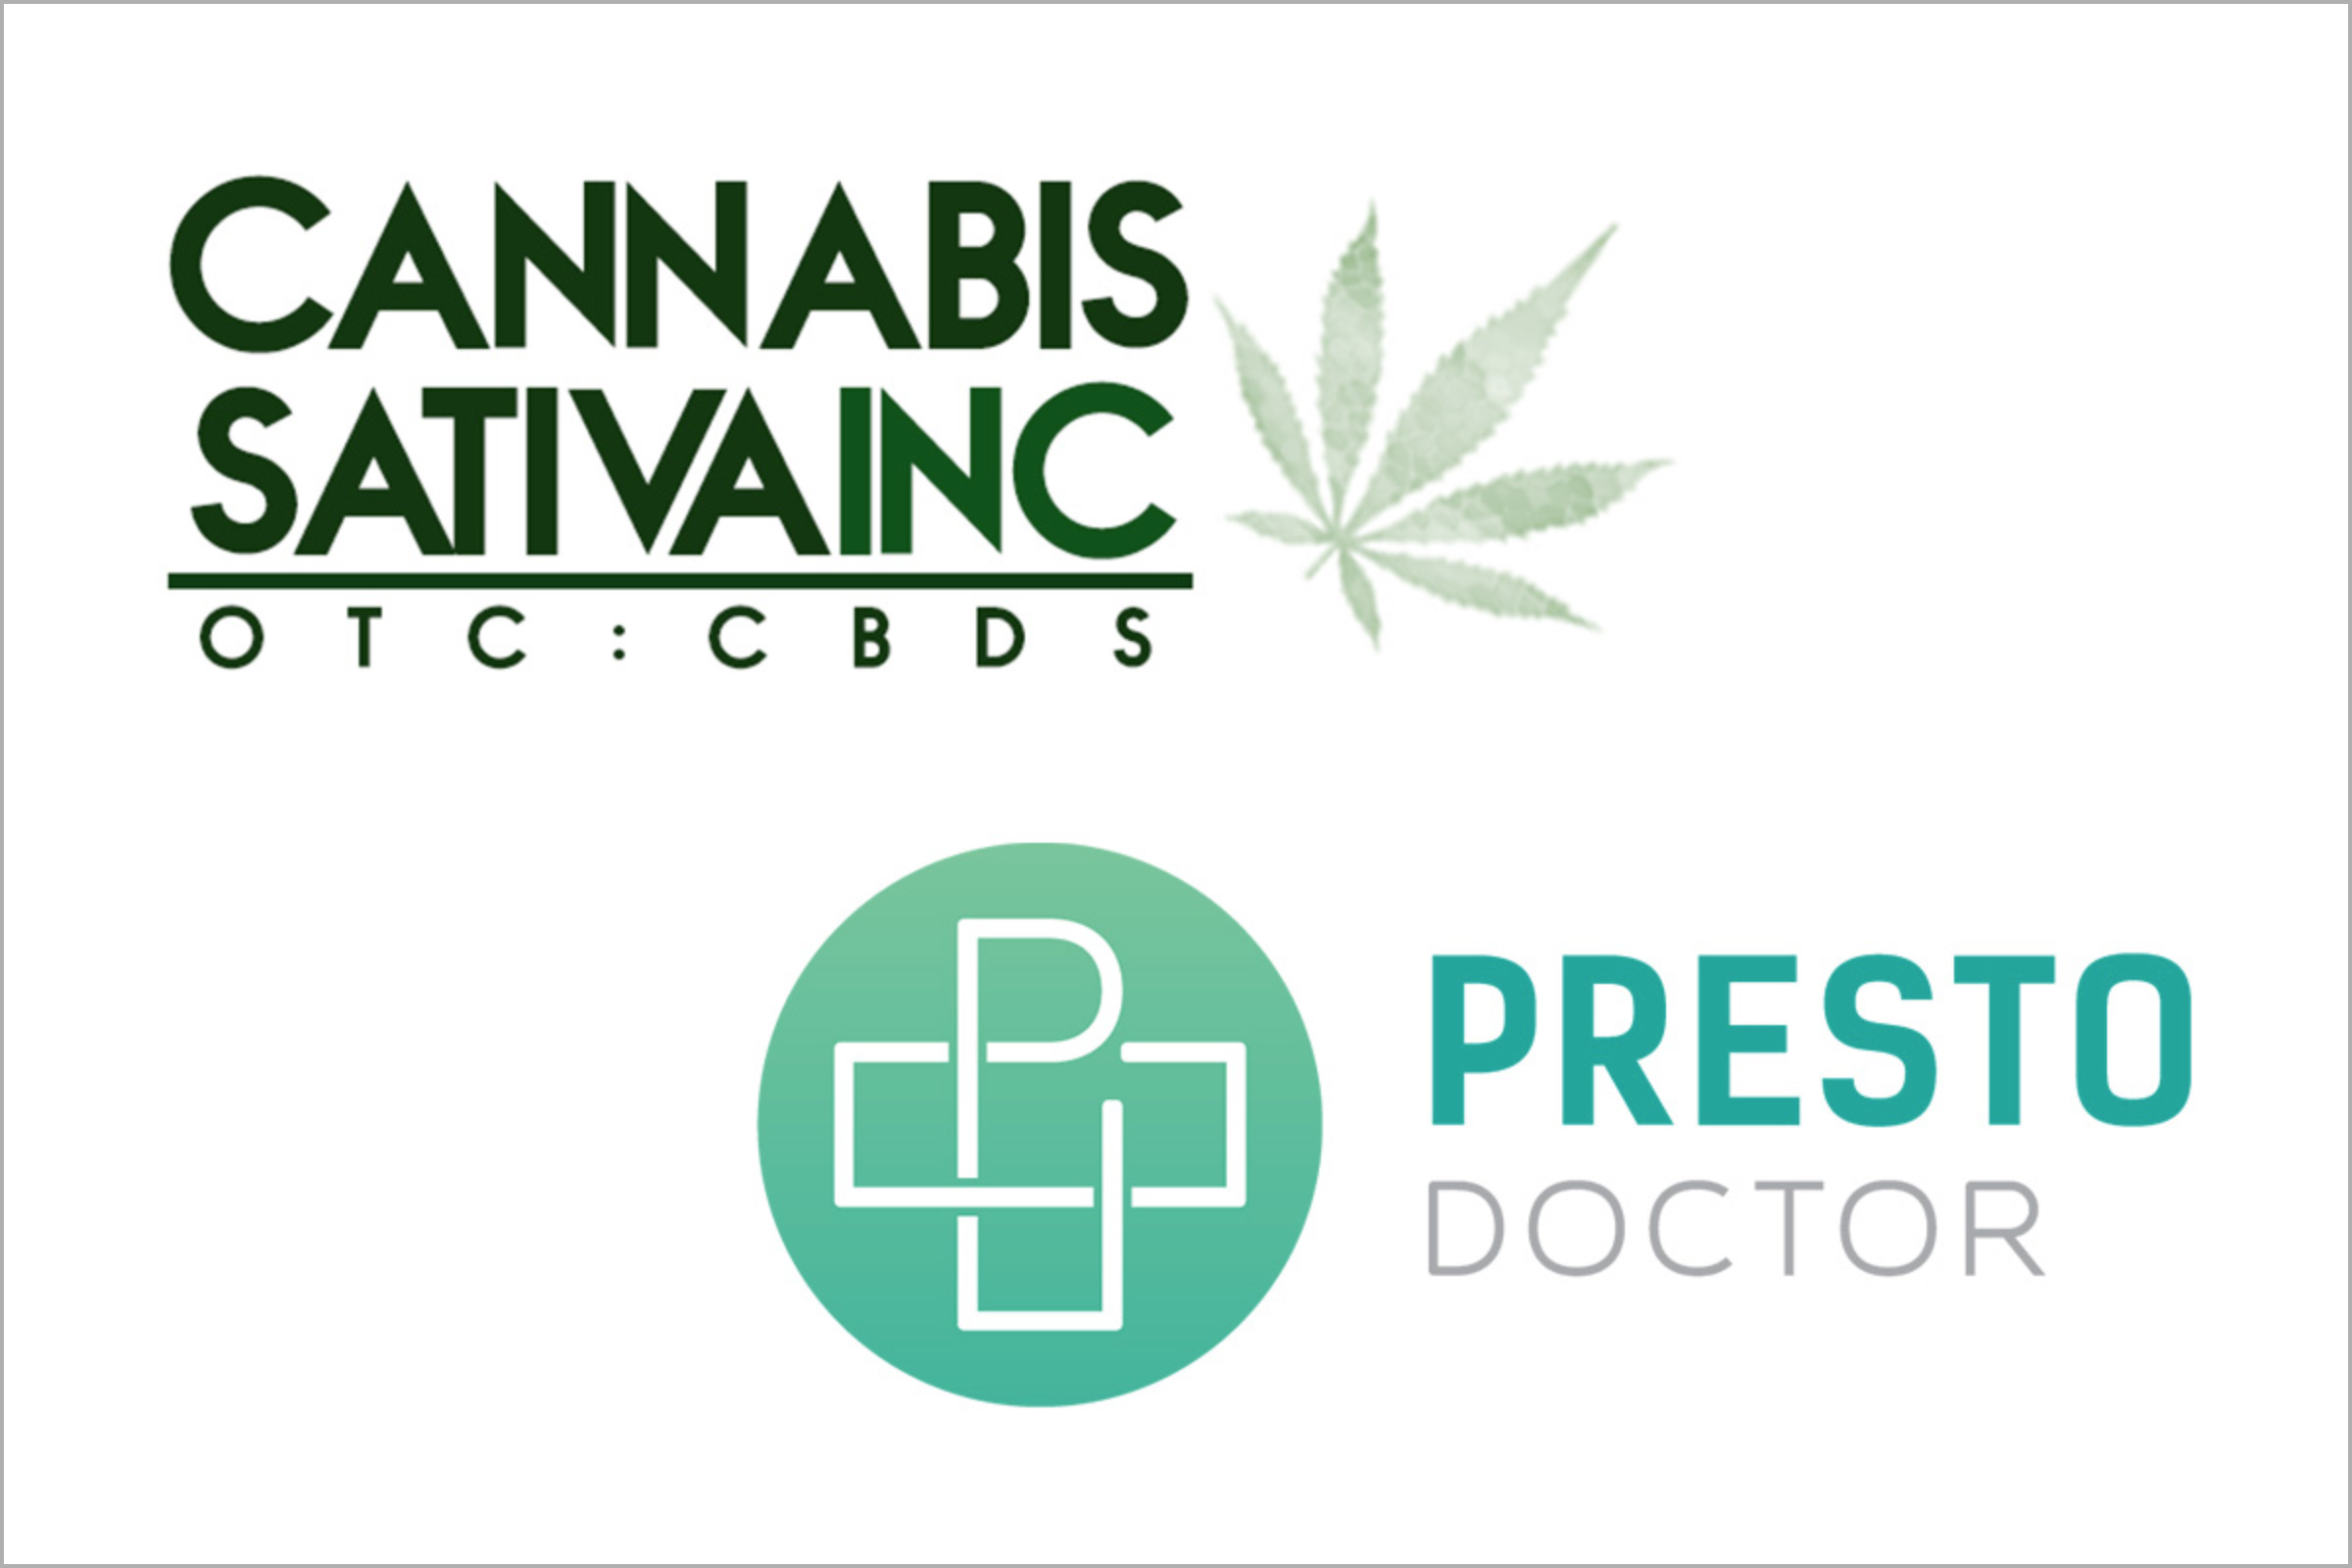 Presto Doctor Cannabis Sativa Inc